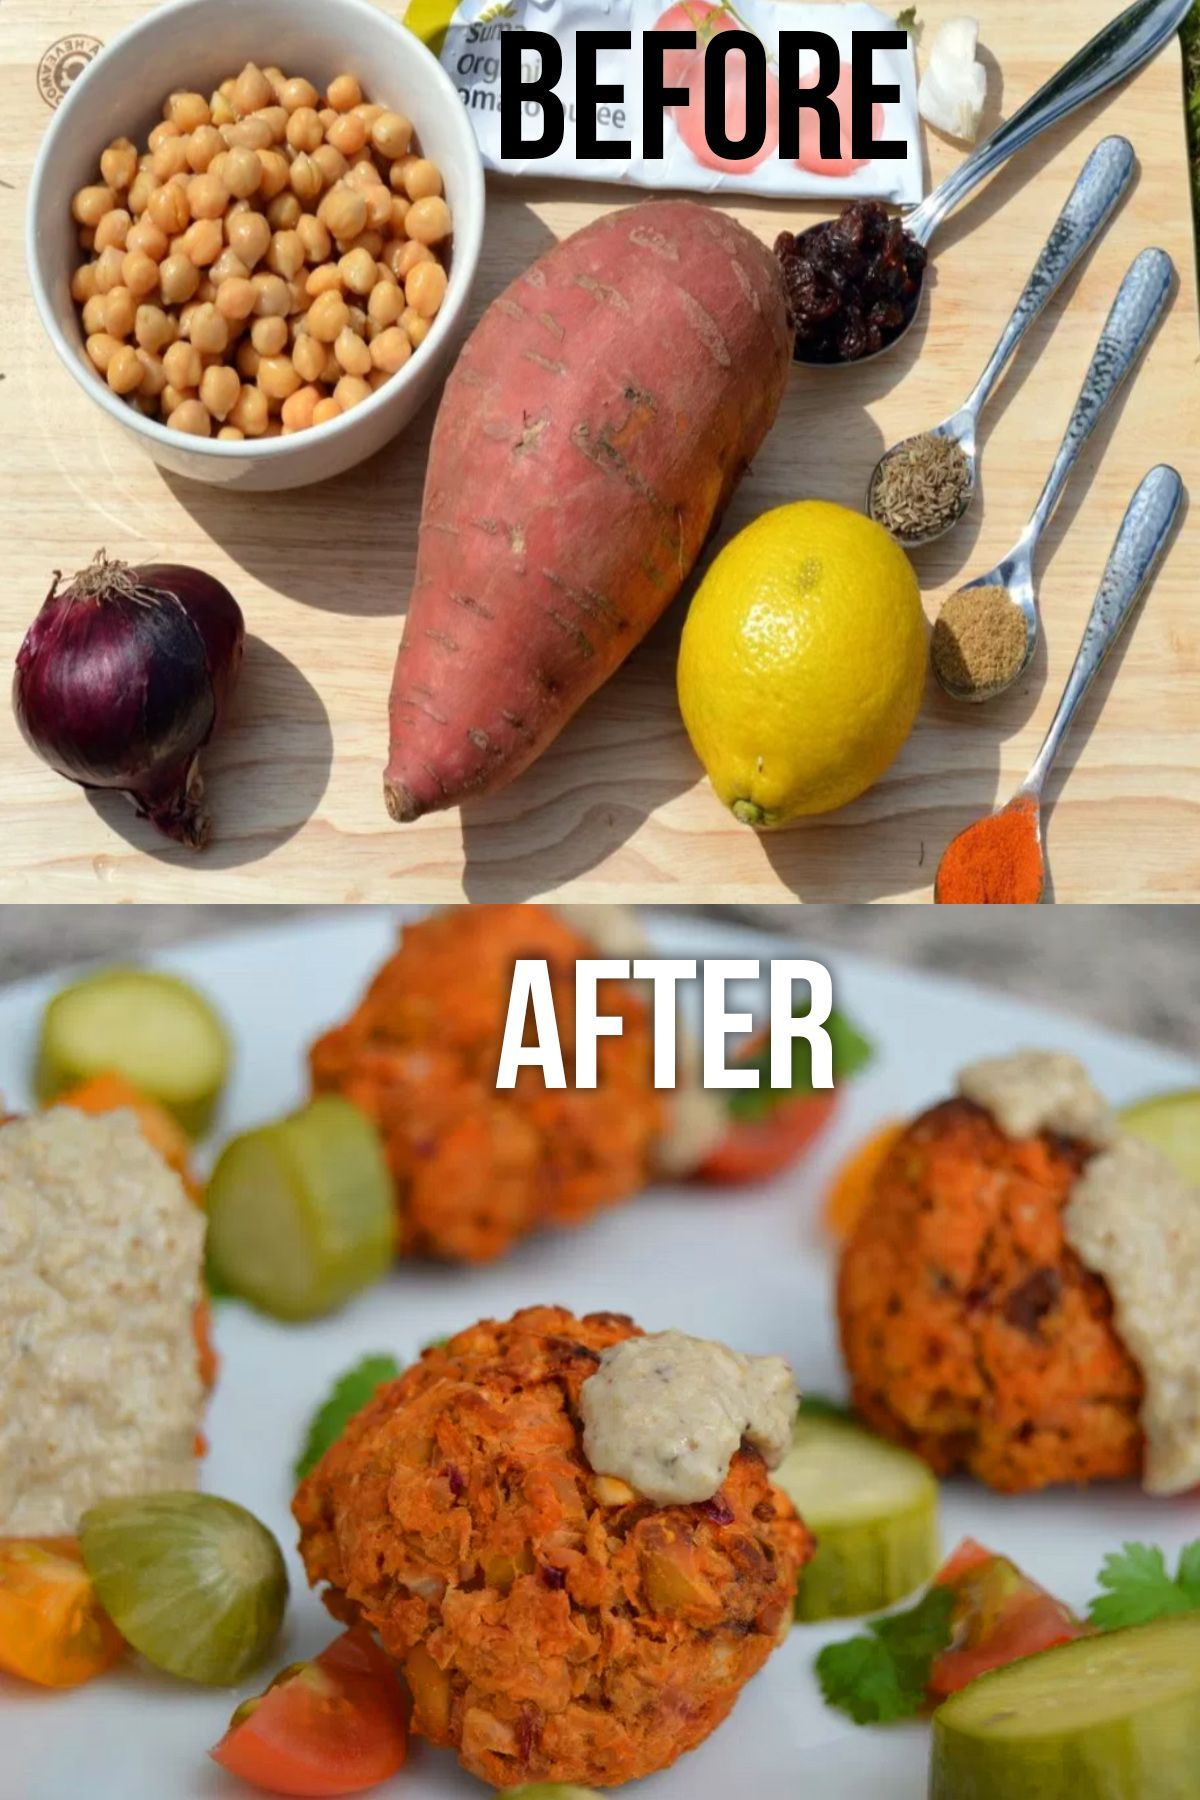 Baked sweet potato falafels from just a few basic ingredients. No added oil and bursting with good stuff. The lemon rind really brings out the flavour of these. Naturally free of dairy, gluten and oil. Suitable for a whole foods plant based diet via @nestandglow 443323157067200498